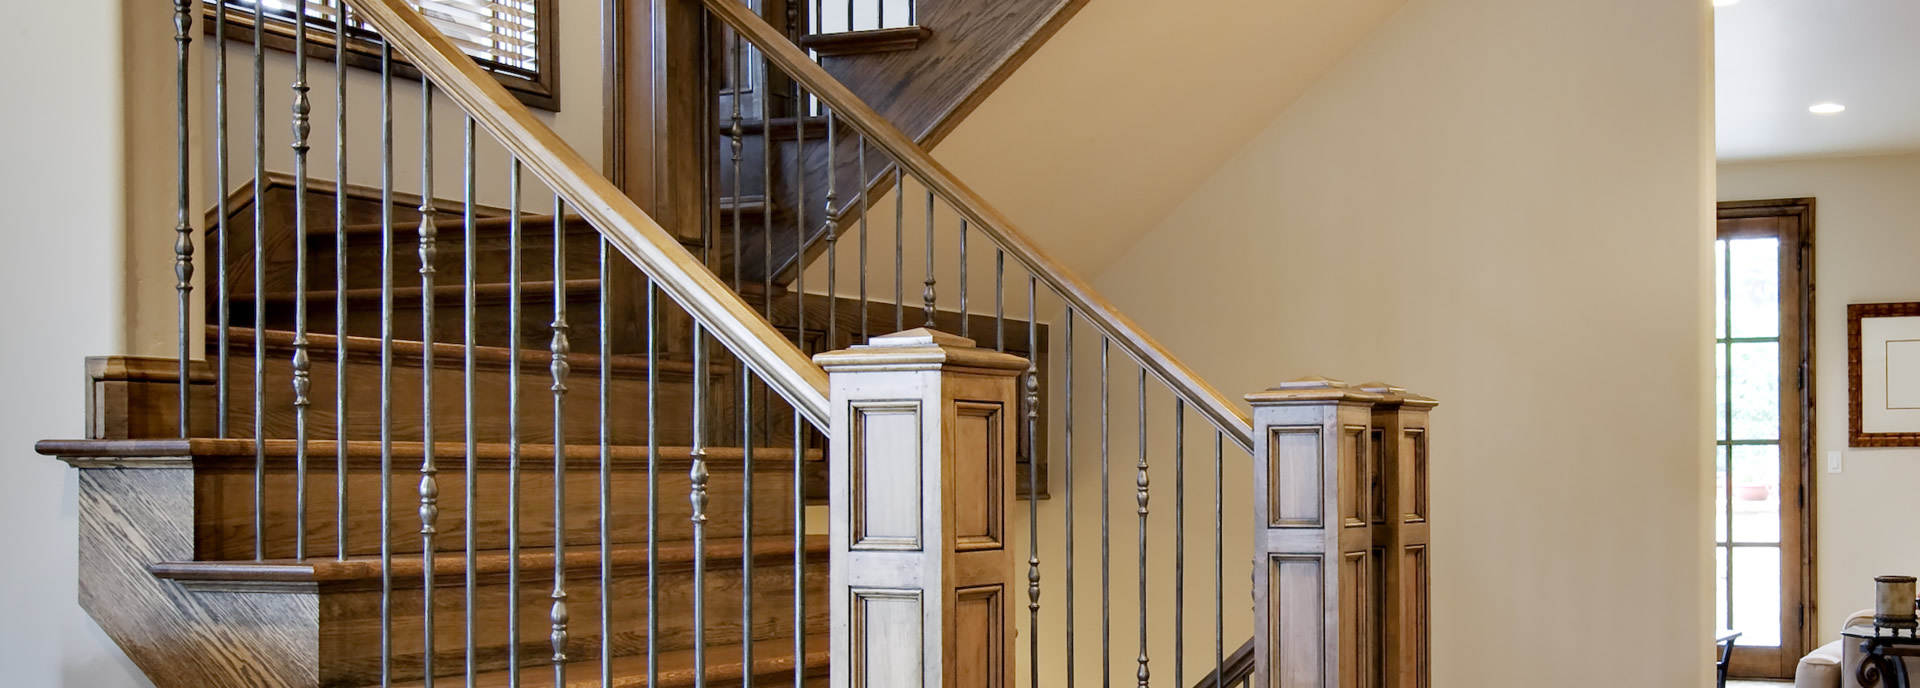 3 Popular Types of Stair Railing Designs Alpharetta, GA